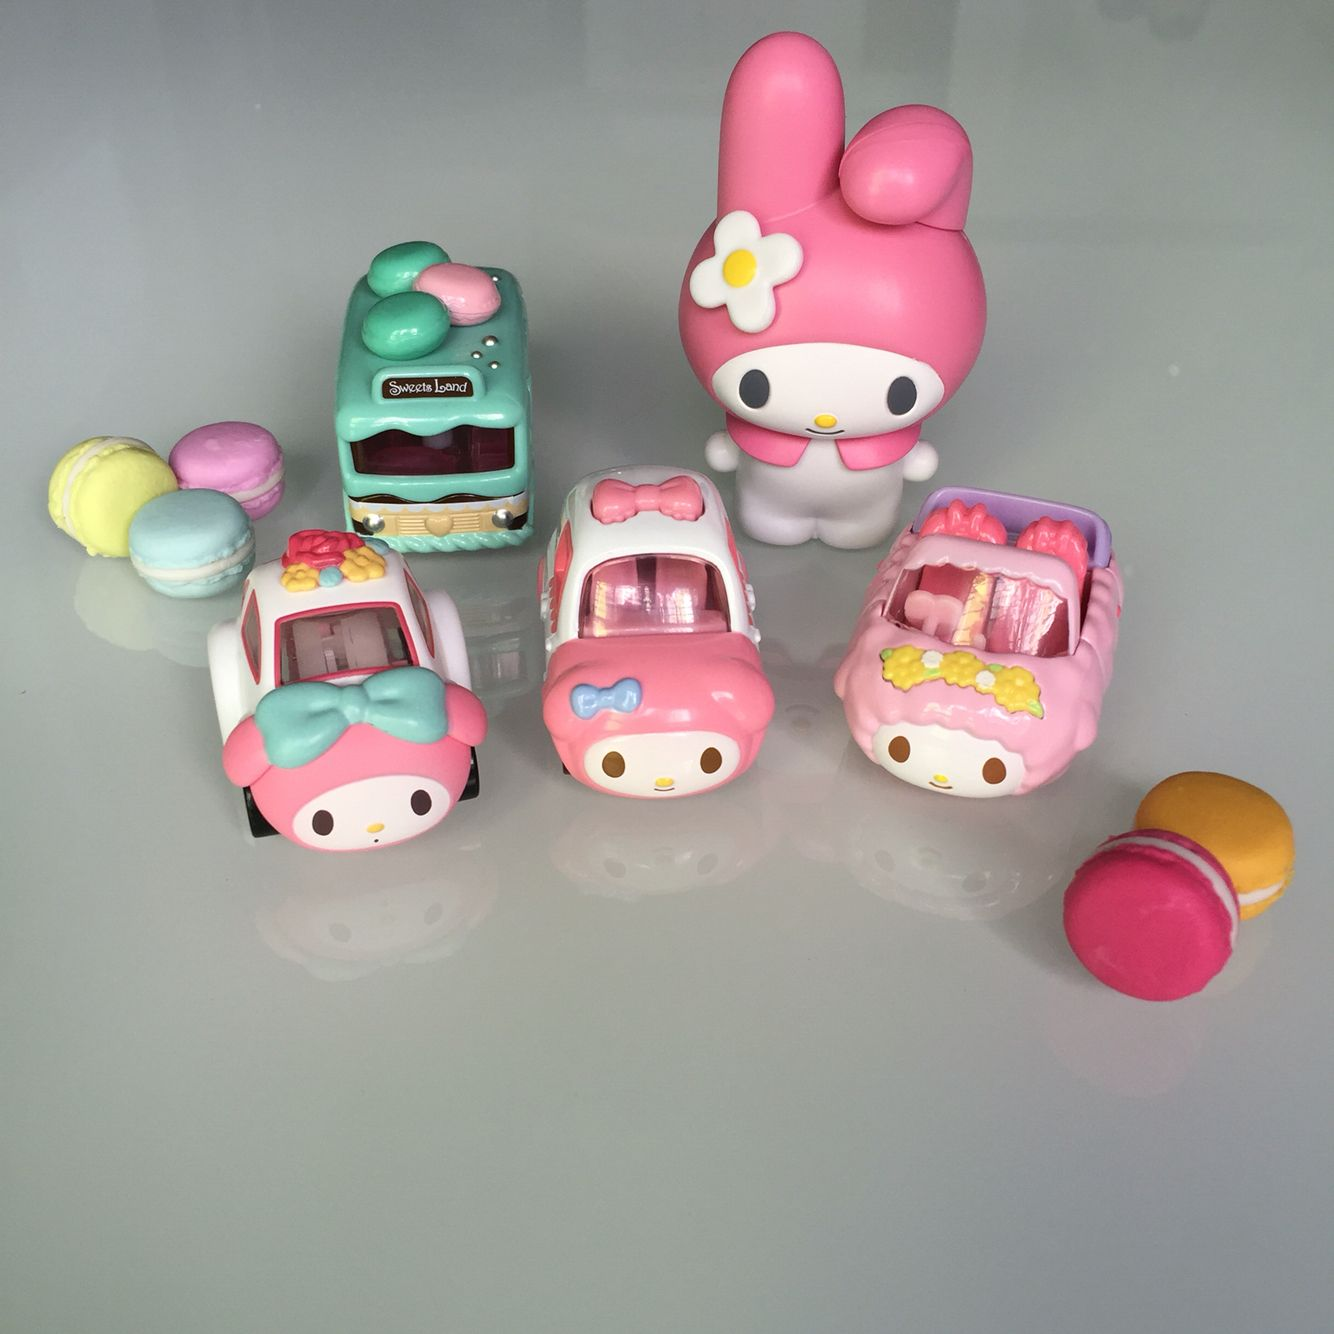 Macaron Birthday Bus And My Melody From Tomy Takara Tomica Disney Series Dream Star 5th Anniversary